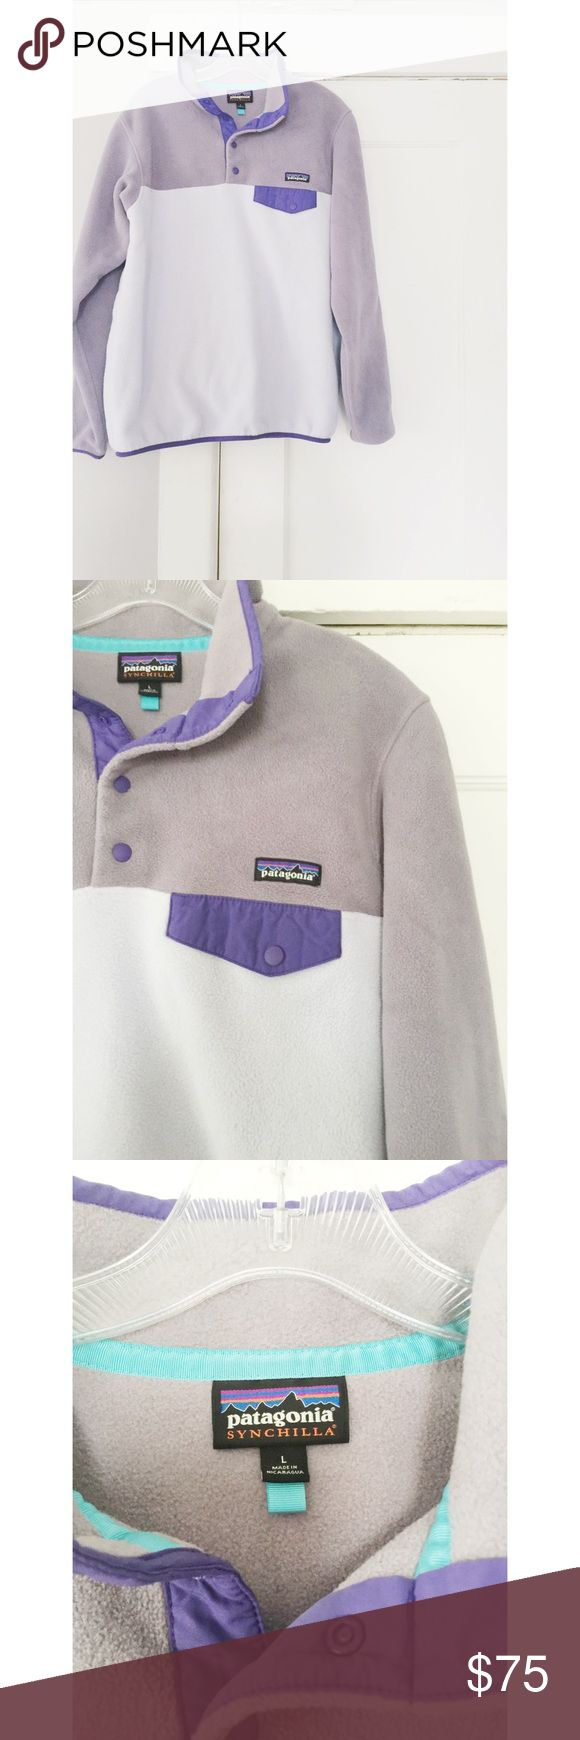 Patagonia Fleece Pullover Patagonia Fleece Pullover. Two toned purple fleece. Great condition no pilling. Women's size large. Fits true to size. Patagonia Jackets & Coats